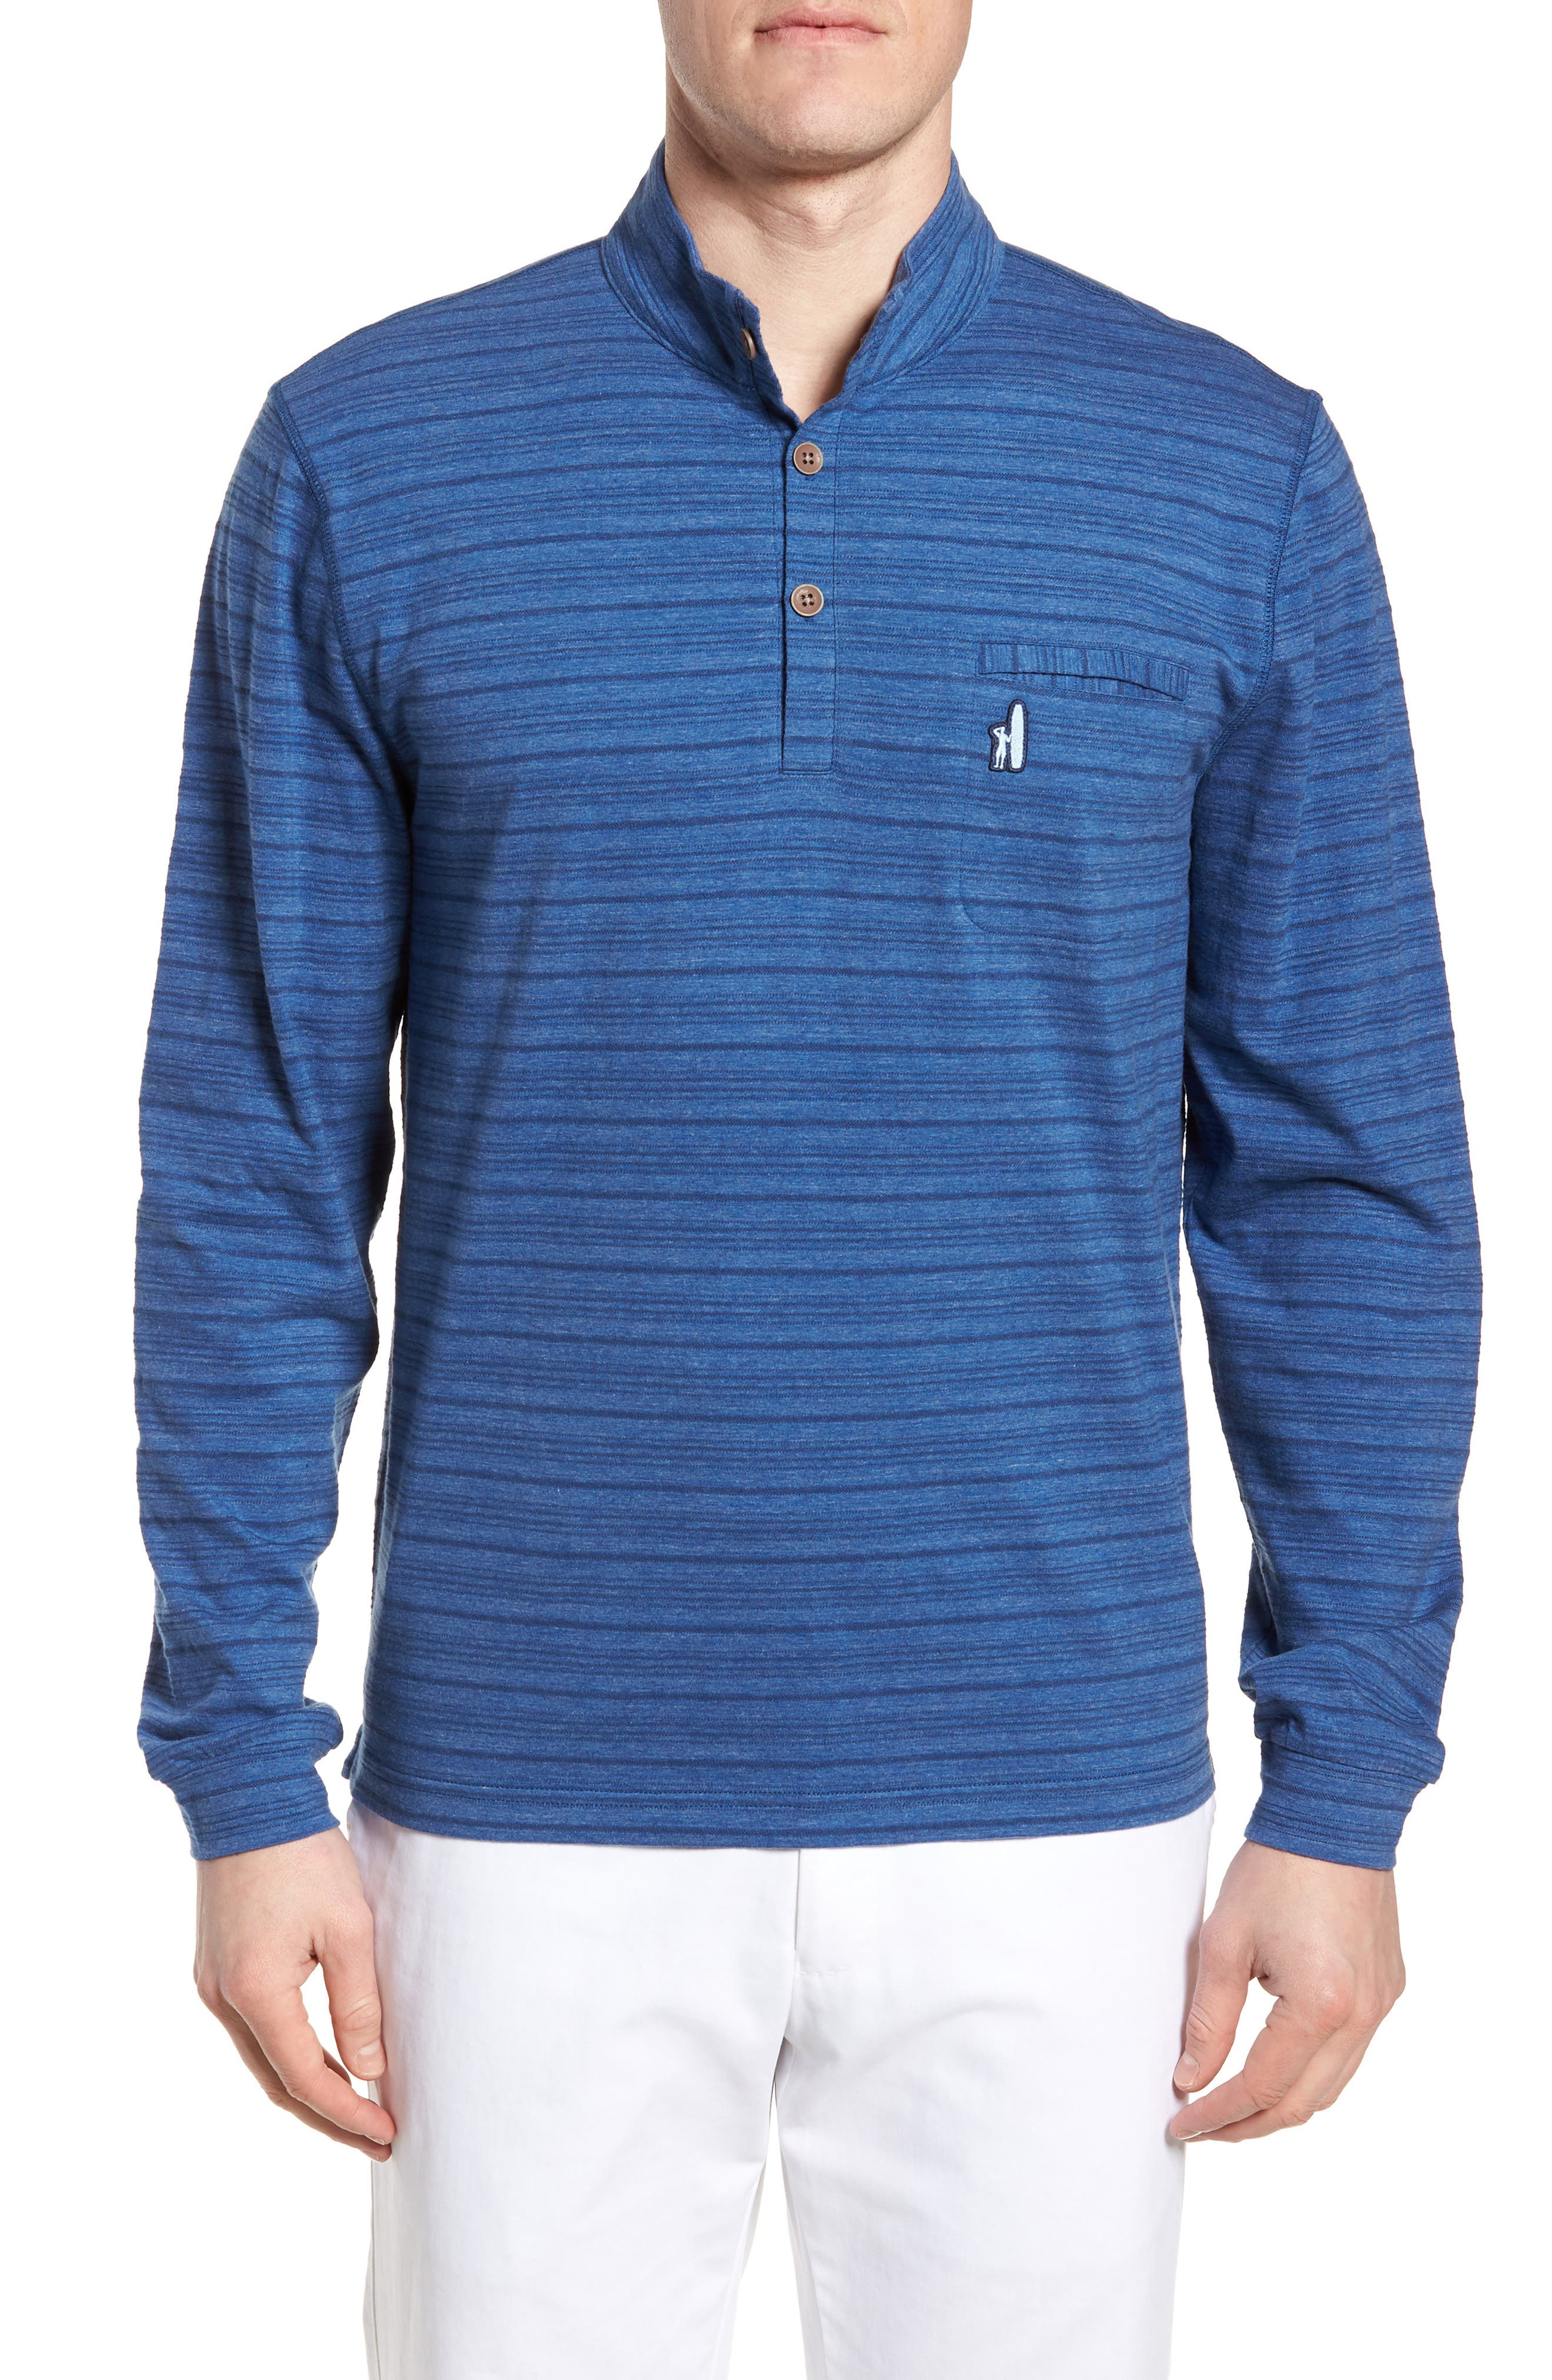 Calder Regular Fit T-Shirt,                             Main thumbnail 1, color,                             Regatta